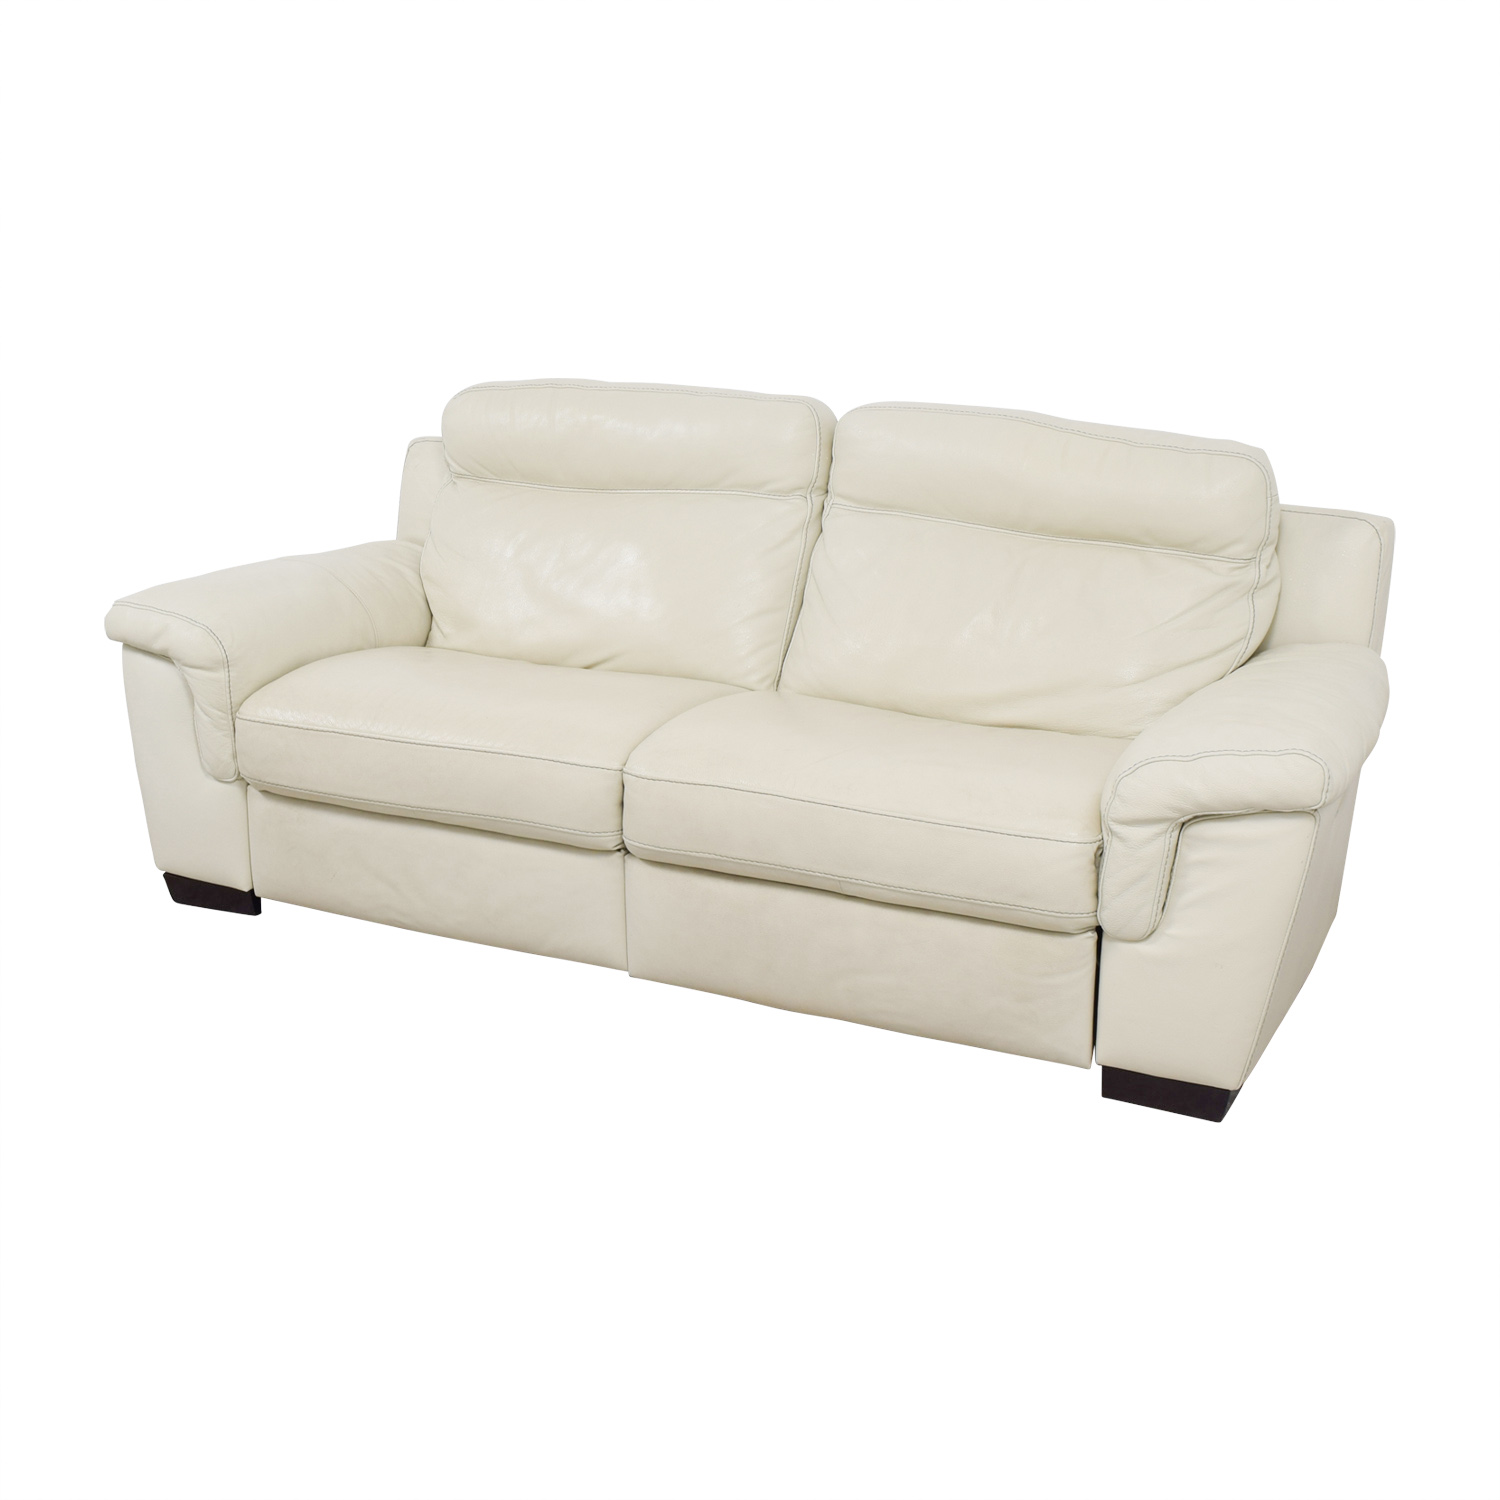 Sofa Chairs Macy S Off White Leather Recliner